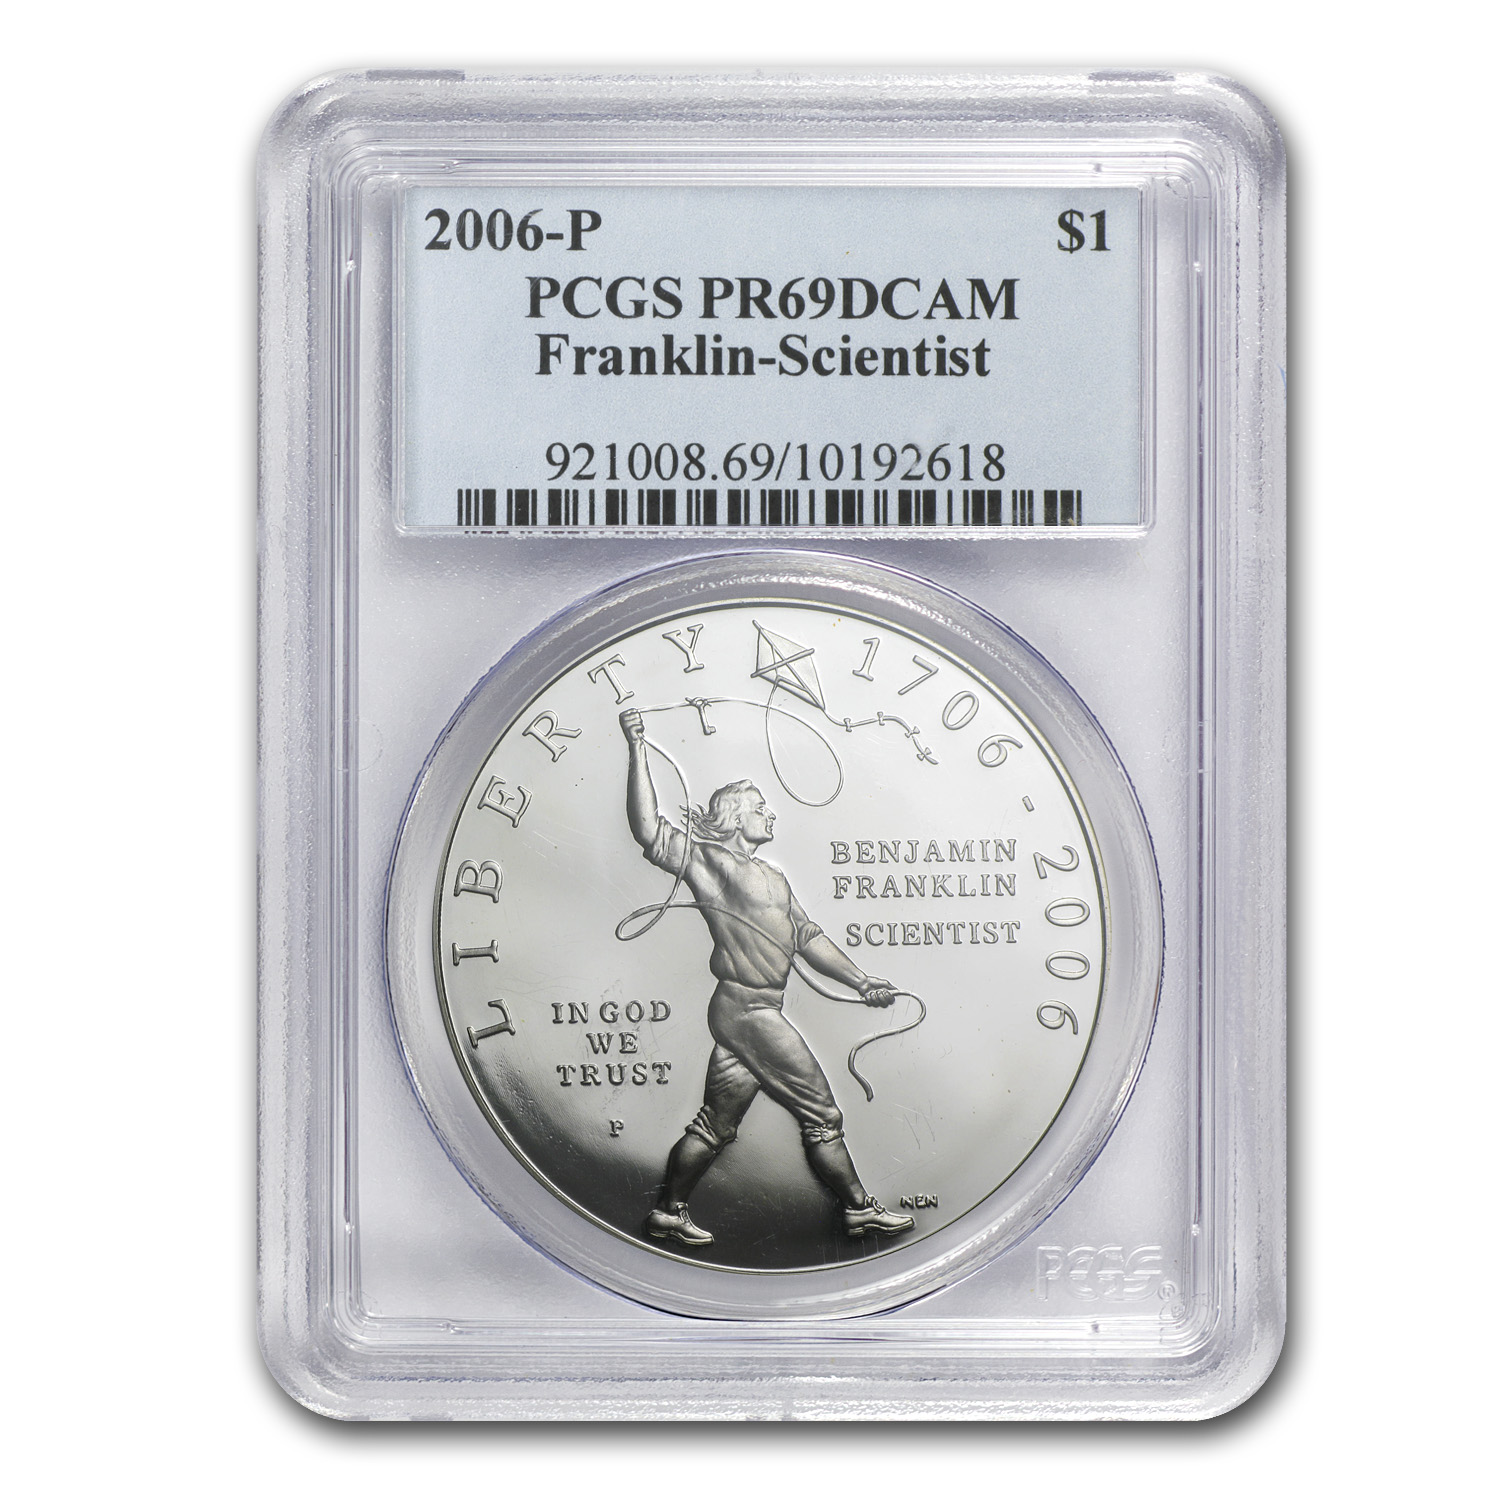 2006-P Ben Franklin Scientist $1 Silver Commem PR-69 PCGS